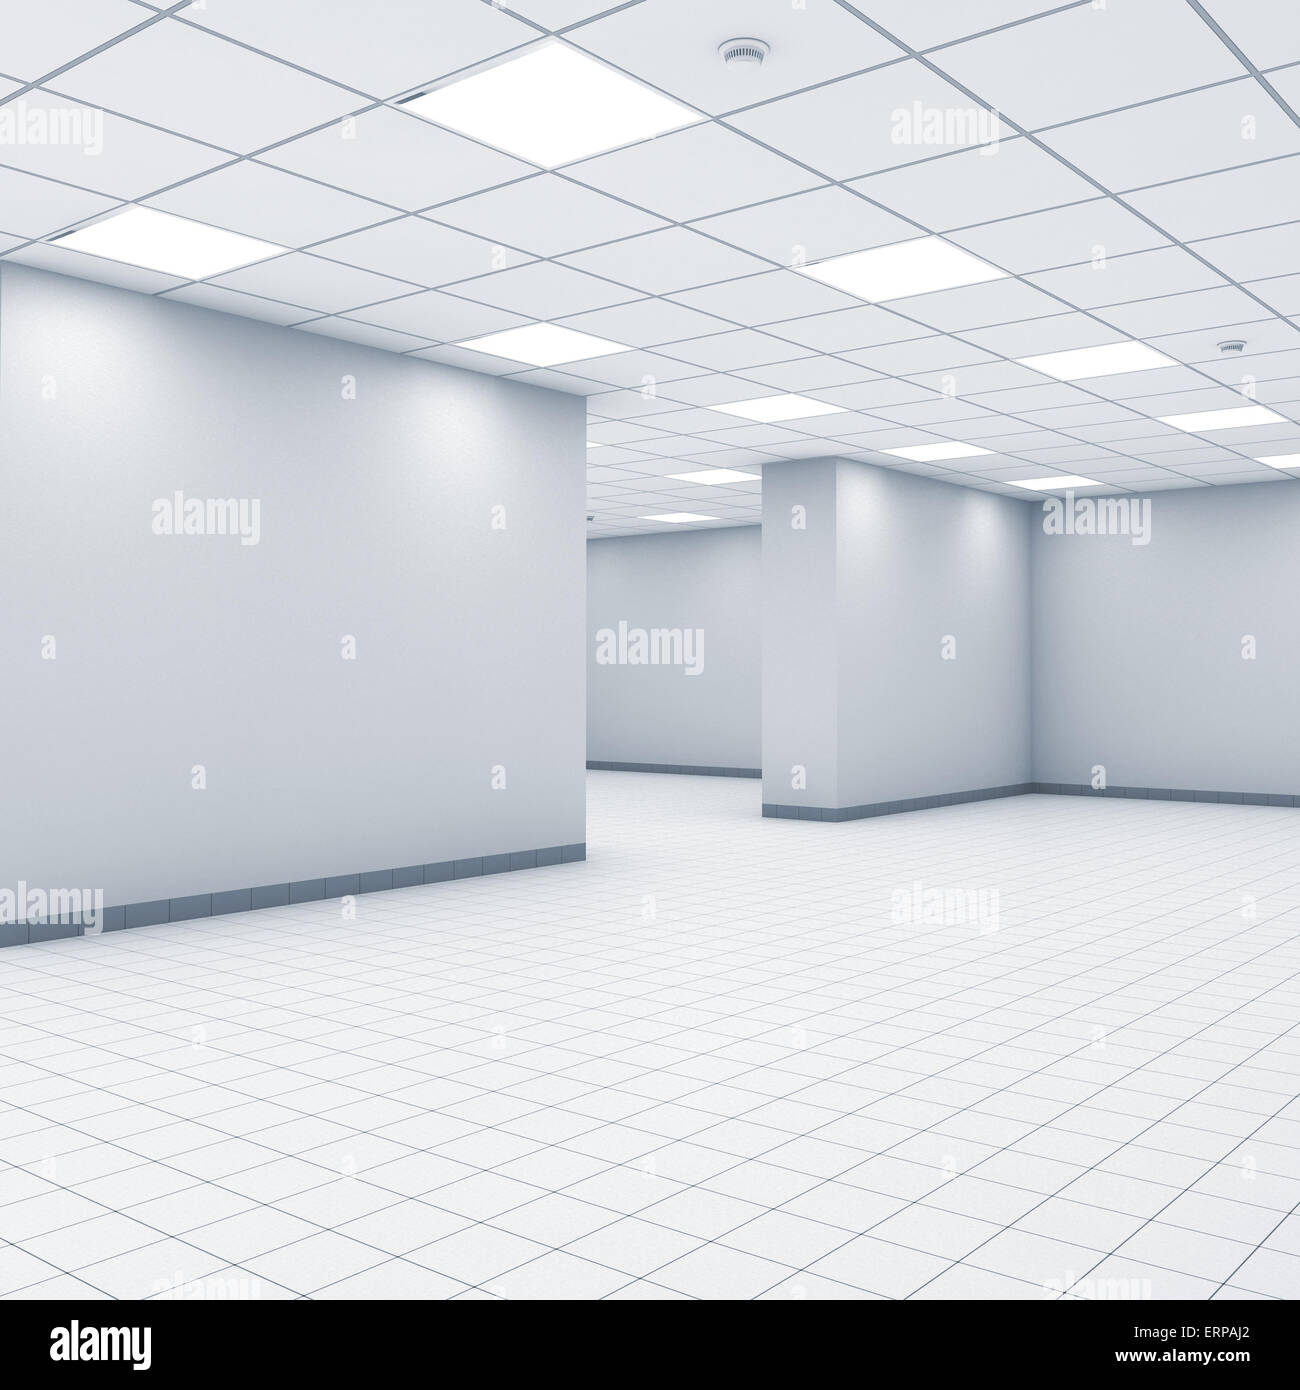 Beautiful Open Space Background, Abstract Empty Office Interior With White Walls,  Lights And Floor Tiling, 3d Illustration